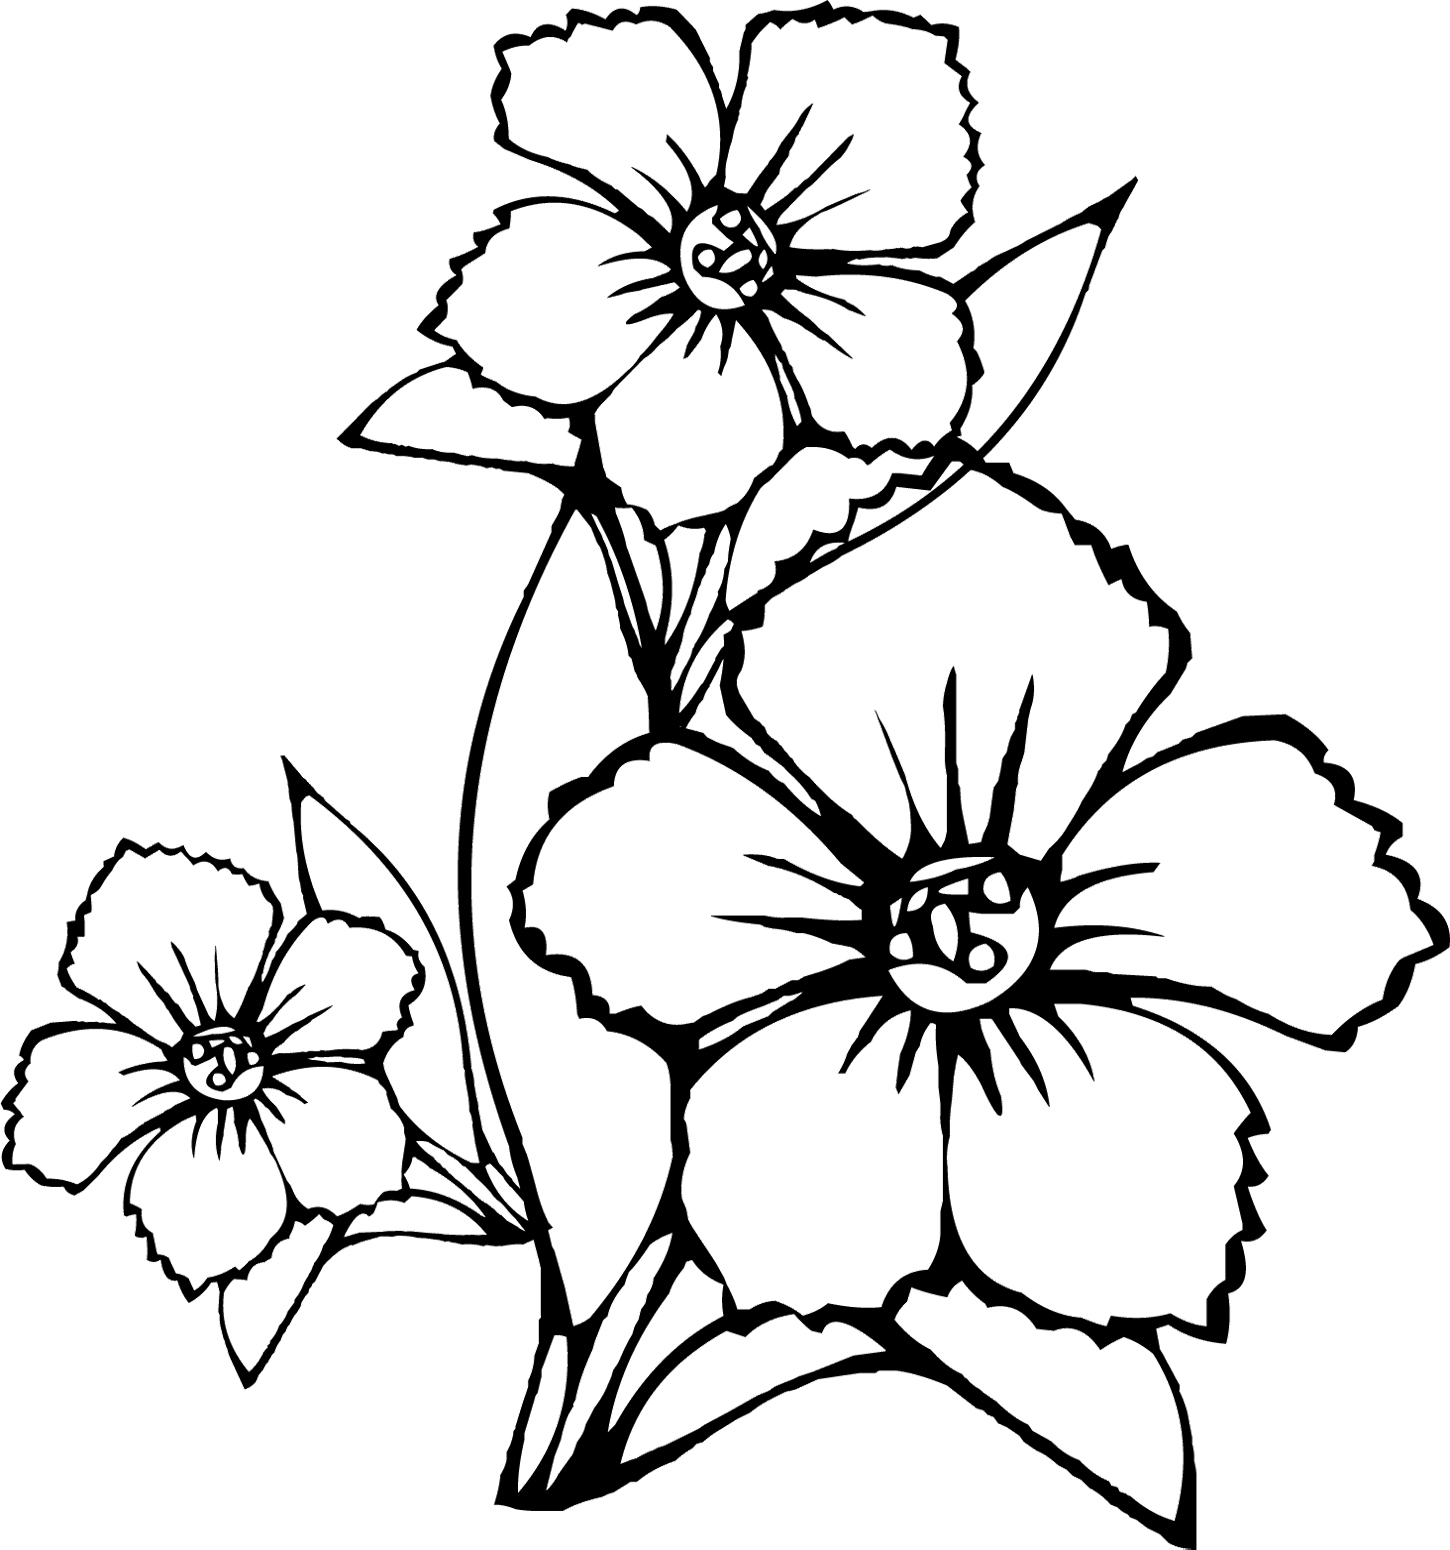 1450x1550 Coloring Pages Cute Coloring Pages Draw A Rose For Kids Flower